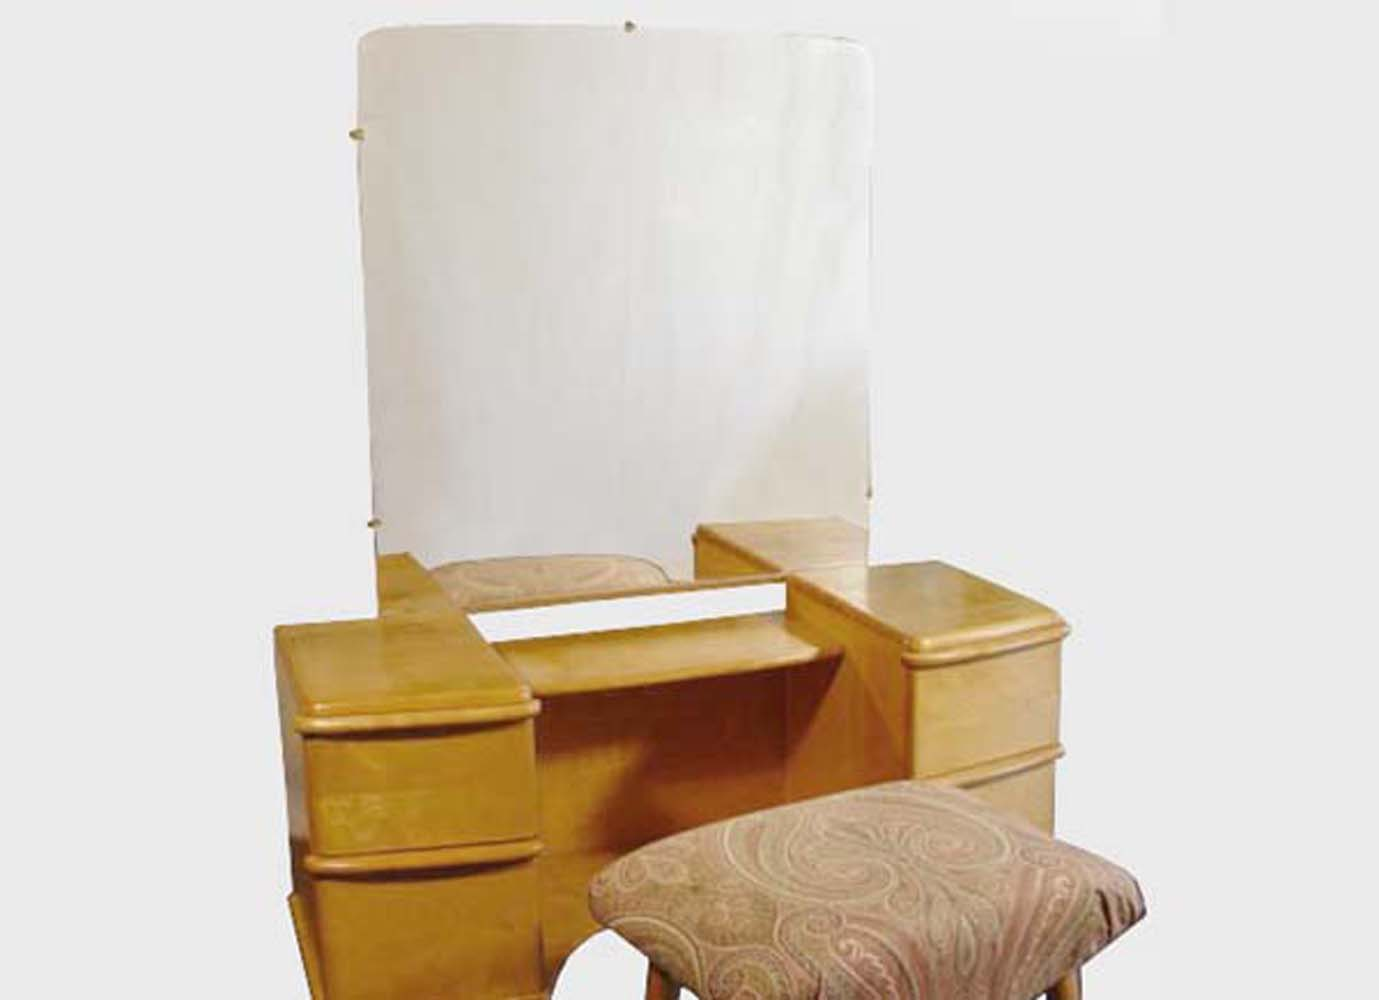 heywood wakefield the miami bedroom group vanity stool set 1941 1942